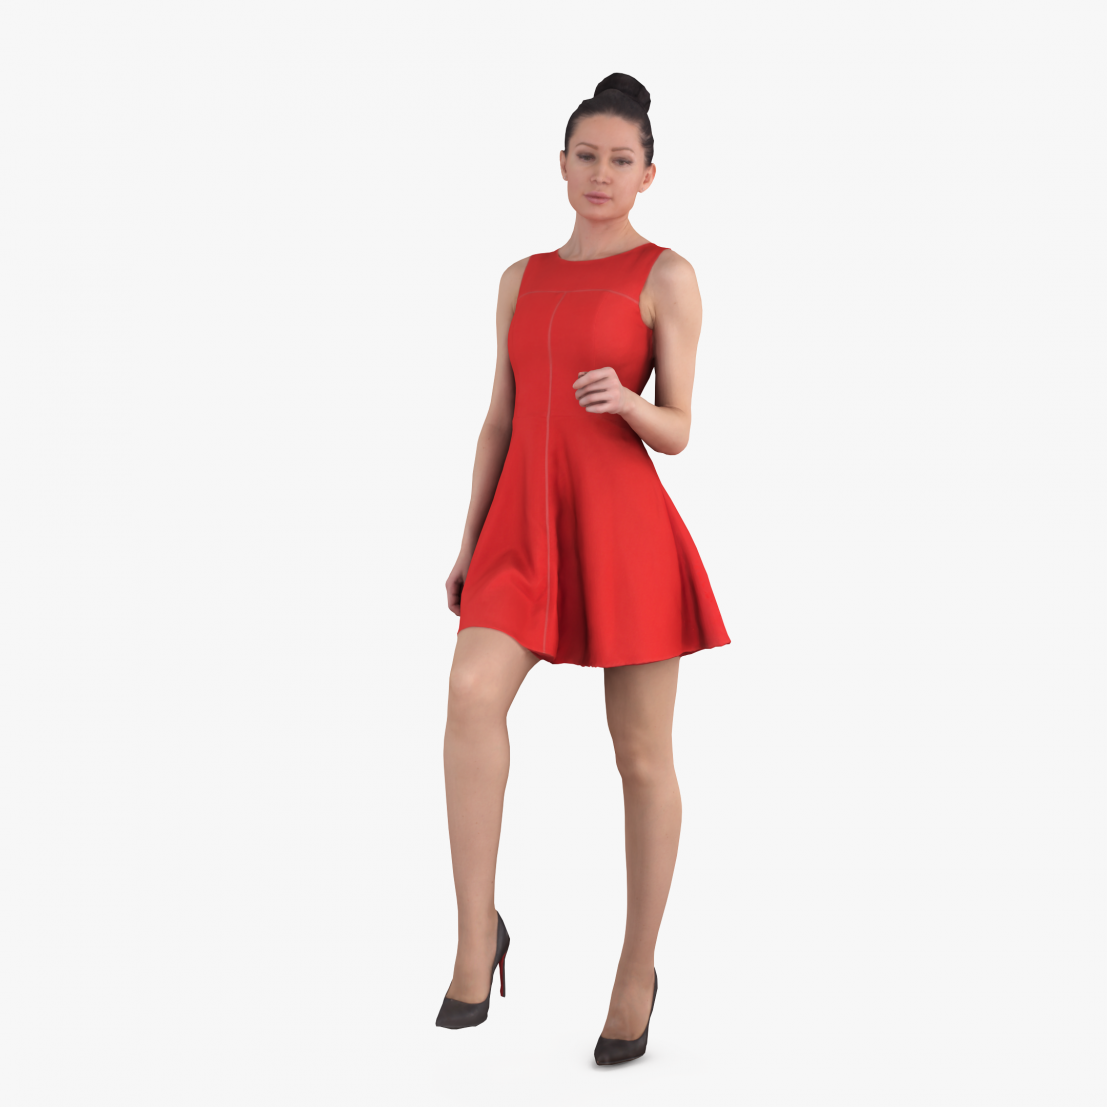 Lady in Red Standing 3D Model | 3DTree Scanning Studio